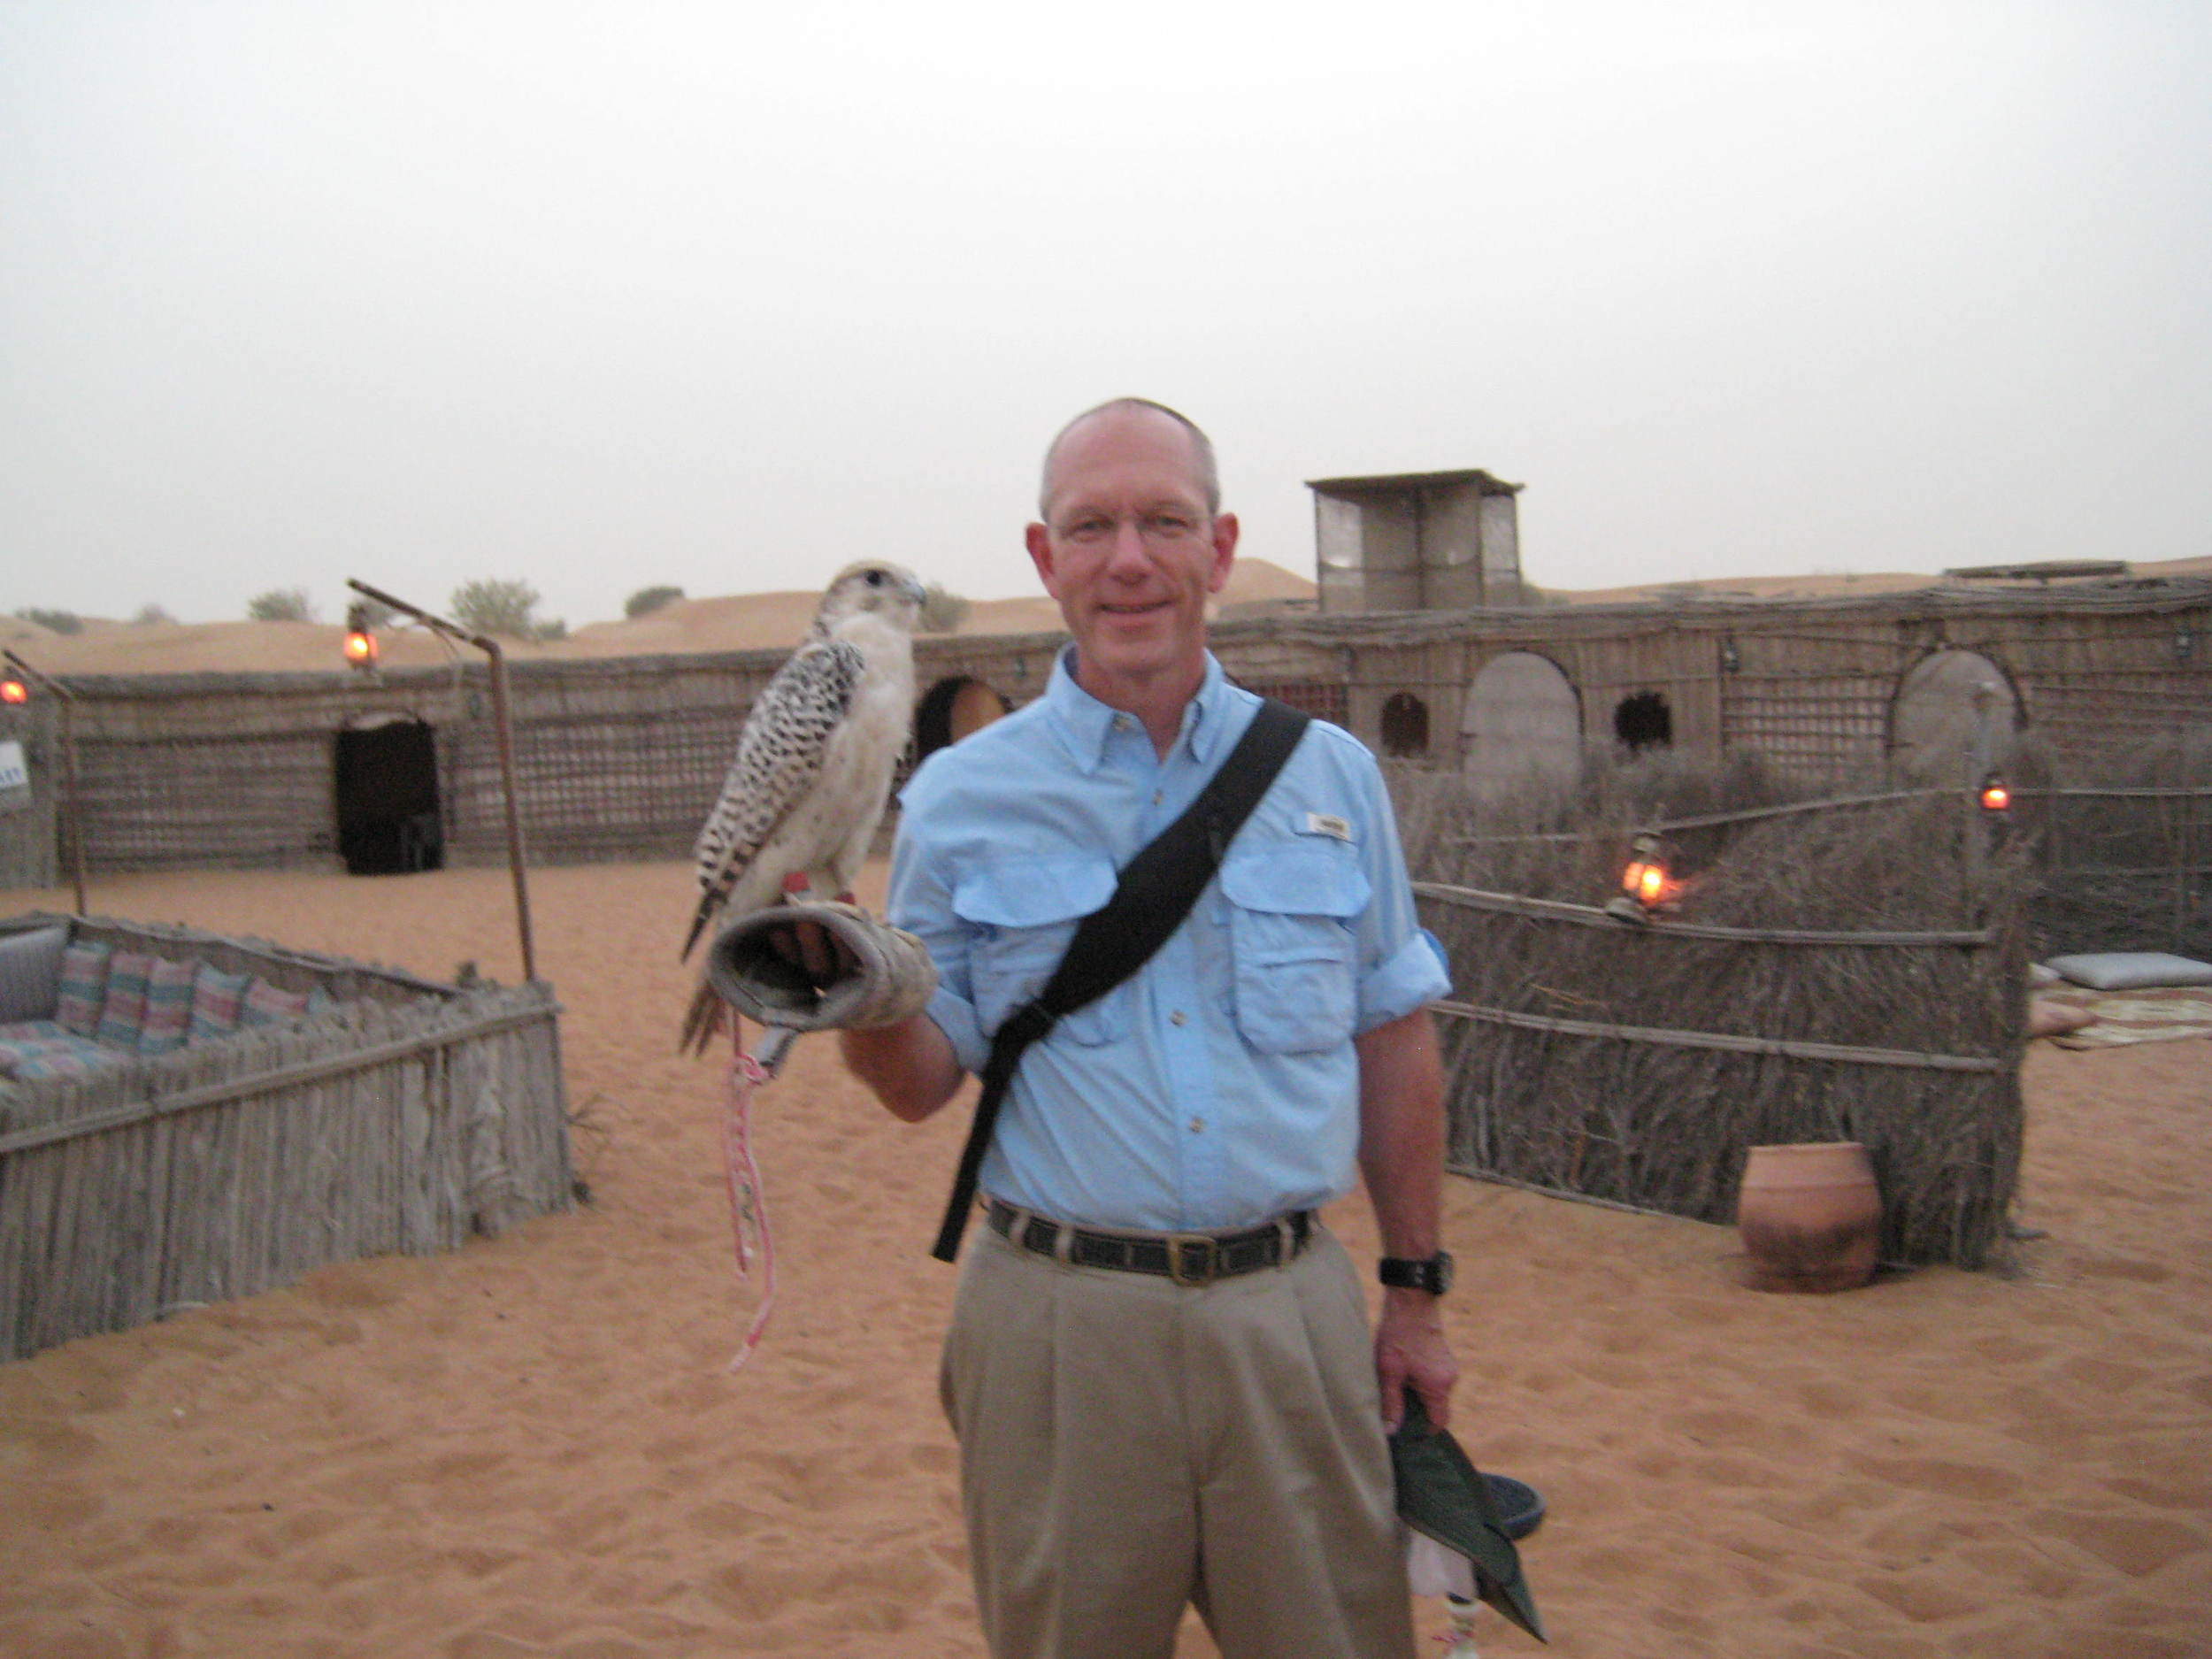 So, I'm in the desert of the UAE and this bird lands on my arm...